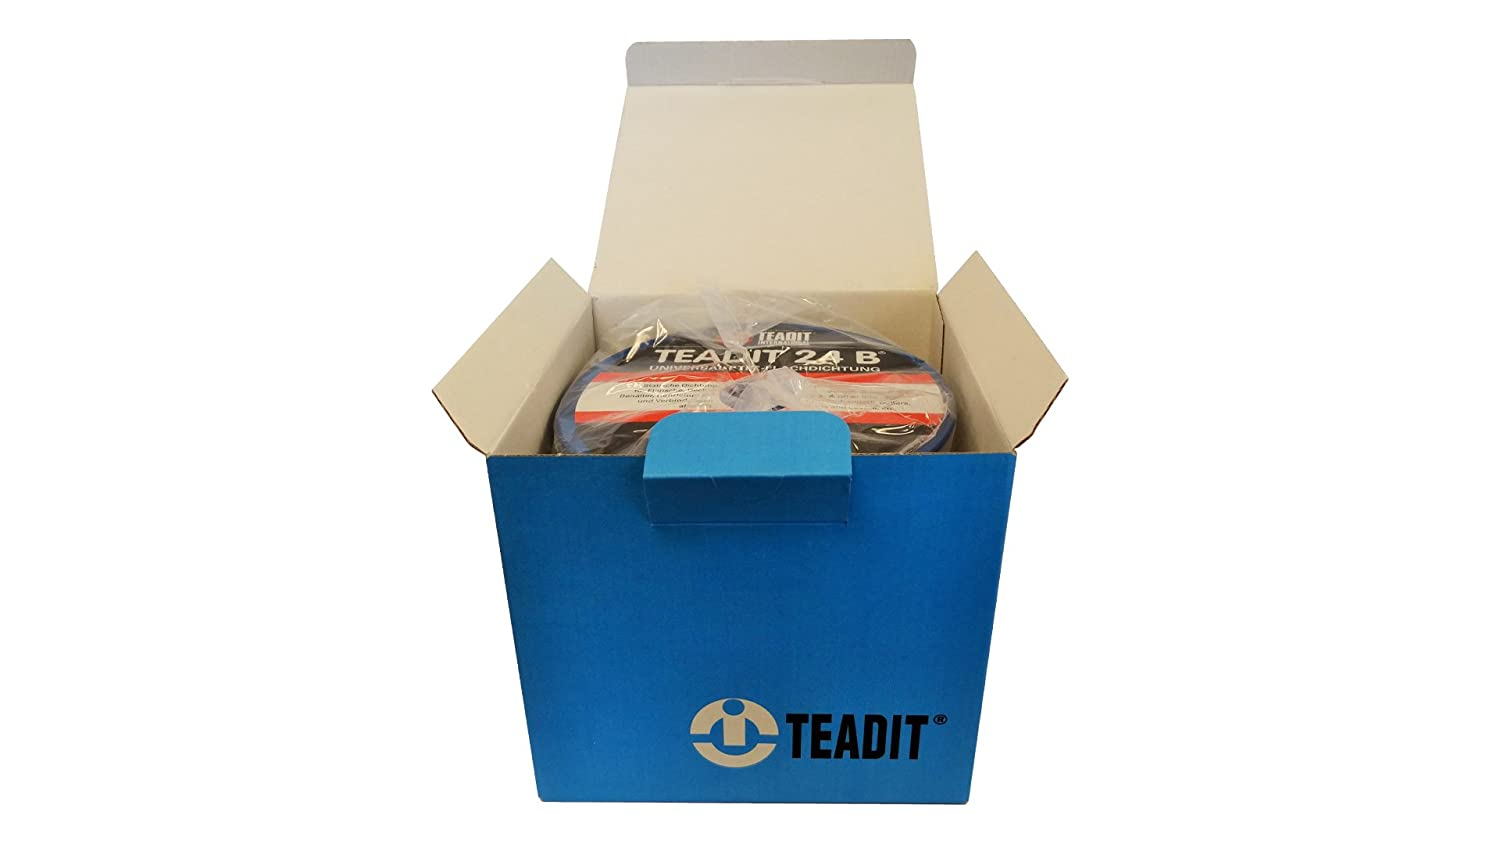 Sterling Seal and Supply STCC 1500.50015 1500 Teadit 24B White PTFE Joint Sealant for Applications in Steel Glass Lined PVC and Fiber Glass Pipe Flanges Fume Ducts Concrete Lids Heat Exchangers 1 2 Wide 15'